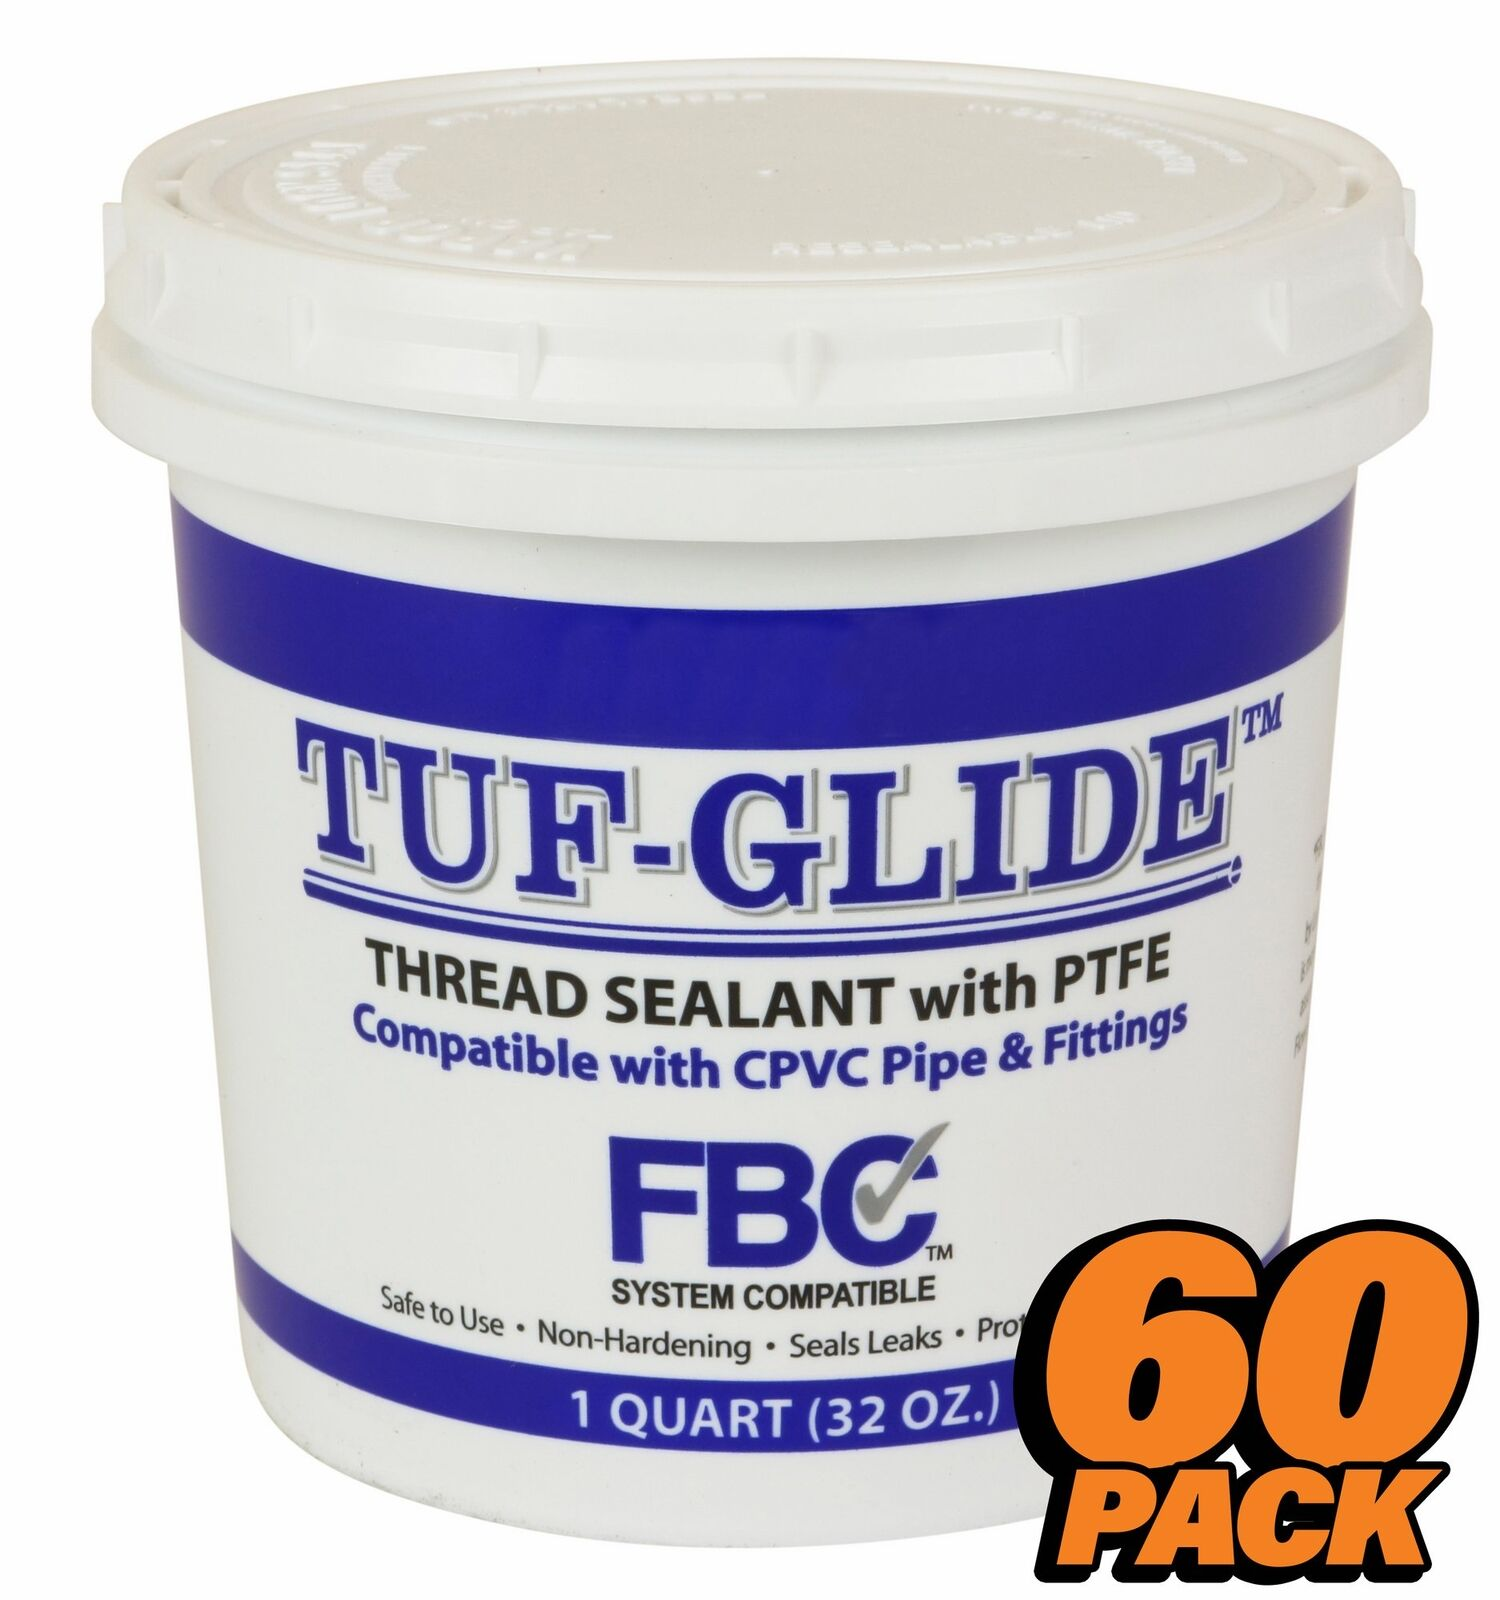 QTY 60 Tuf Glide Thread Sealant w/ PTFE - 32oz 950ml fits LA-CO® and SLIC-TITE®